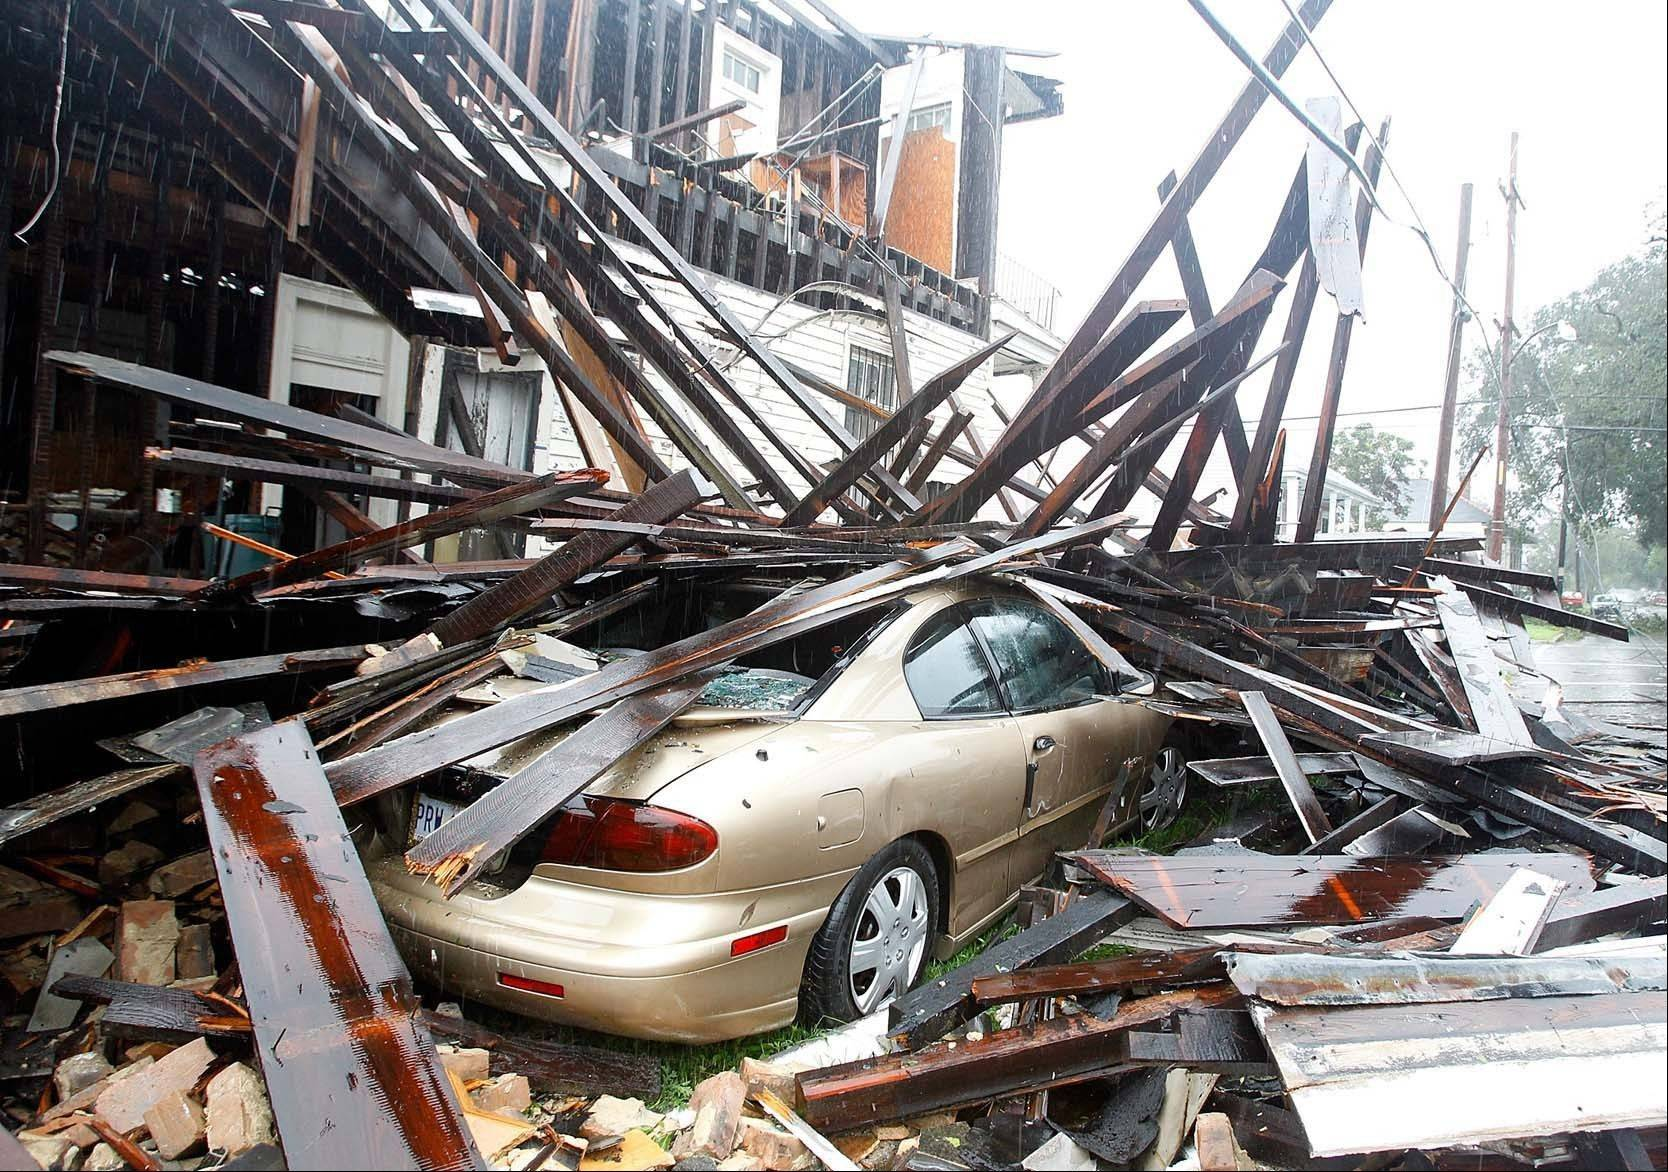 A house at the corner of N. Miro and Columbus Streets in New Orleans collapsed during the height of the Hurricane Isaac.